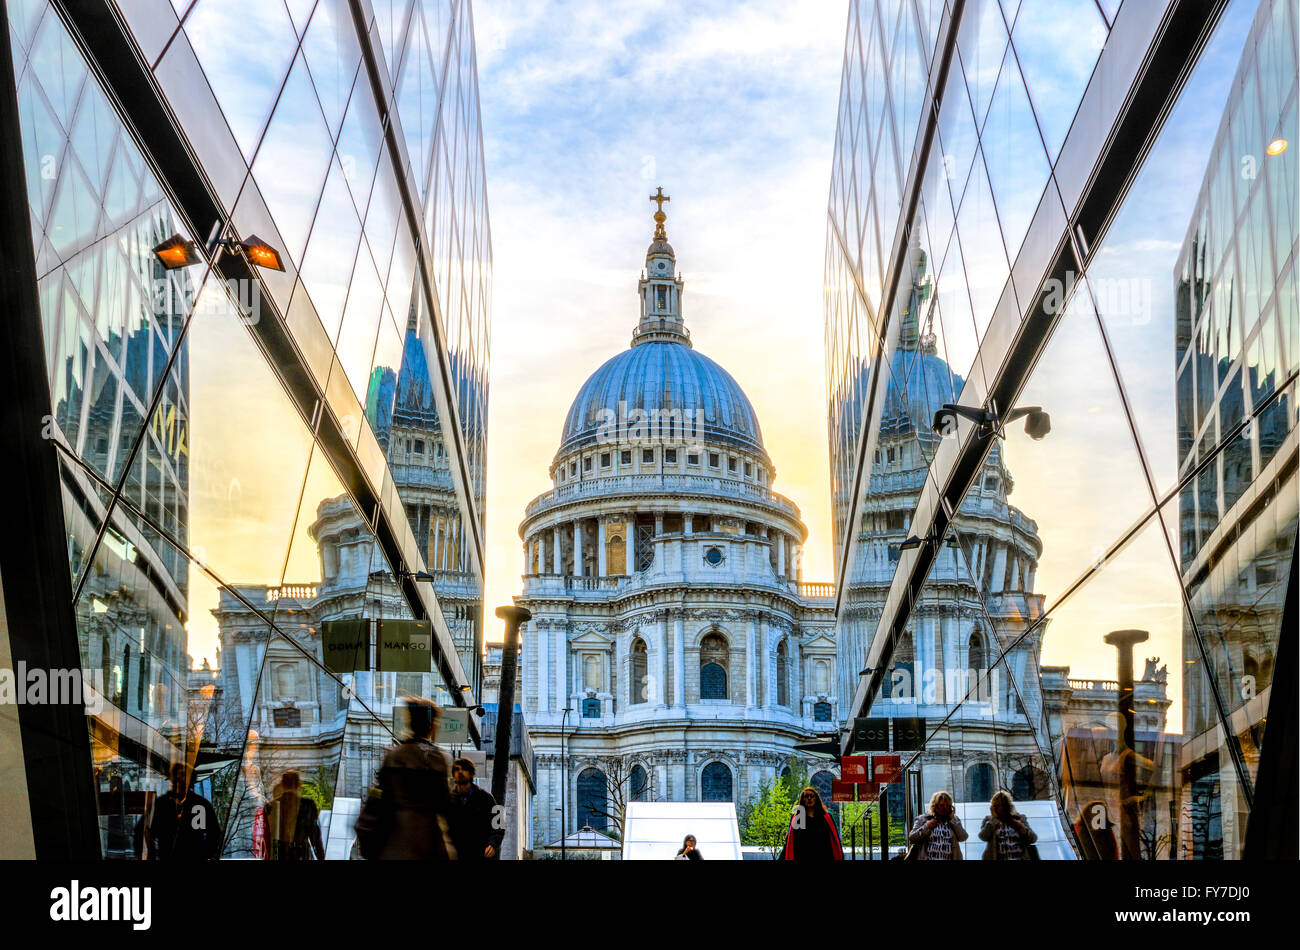 London, England - April 20, 2017 - View of St Paul's Cathedral from the One New Change building. - Stock Image